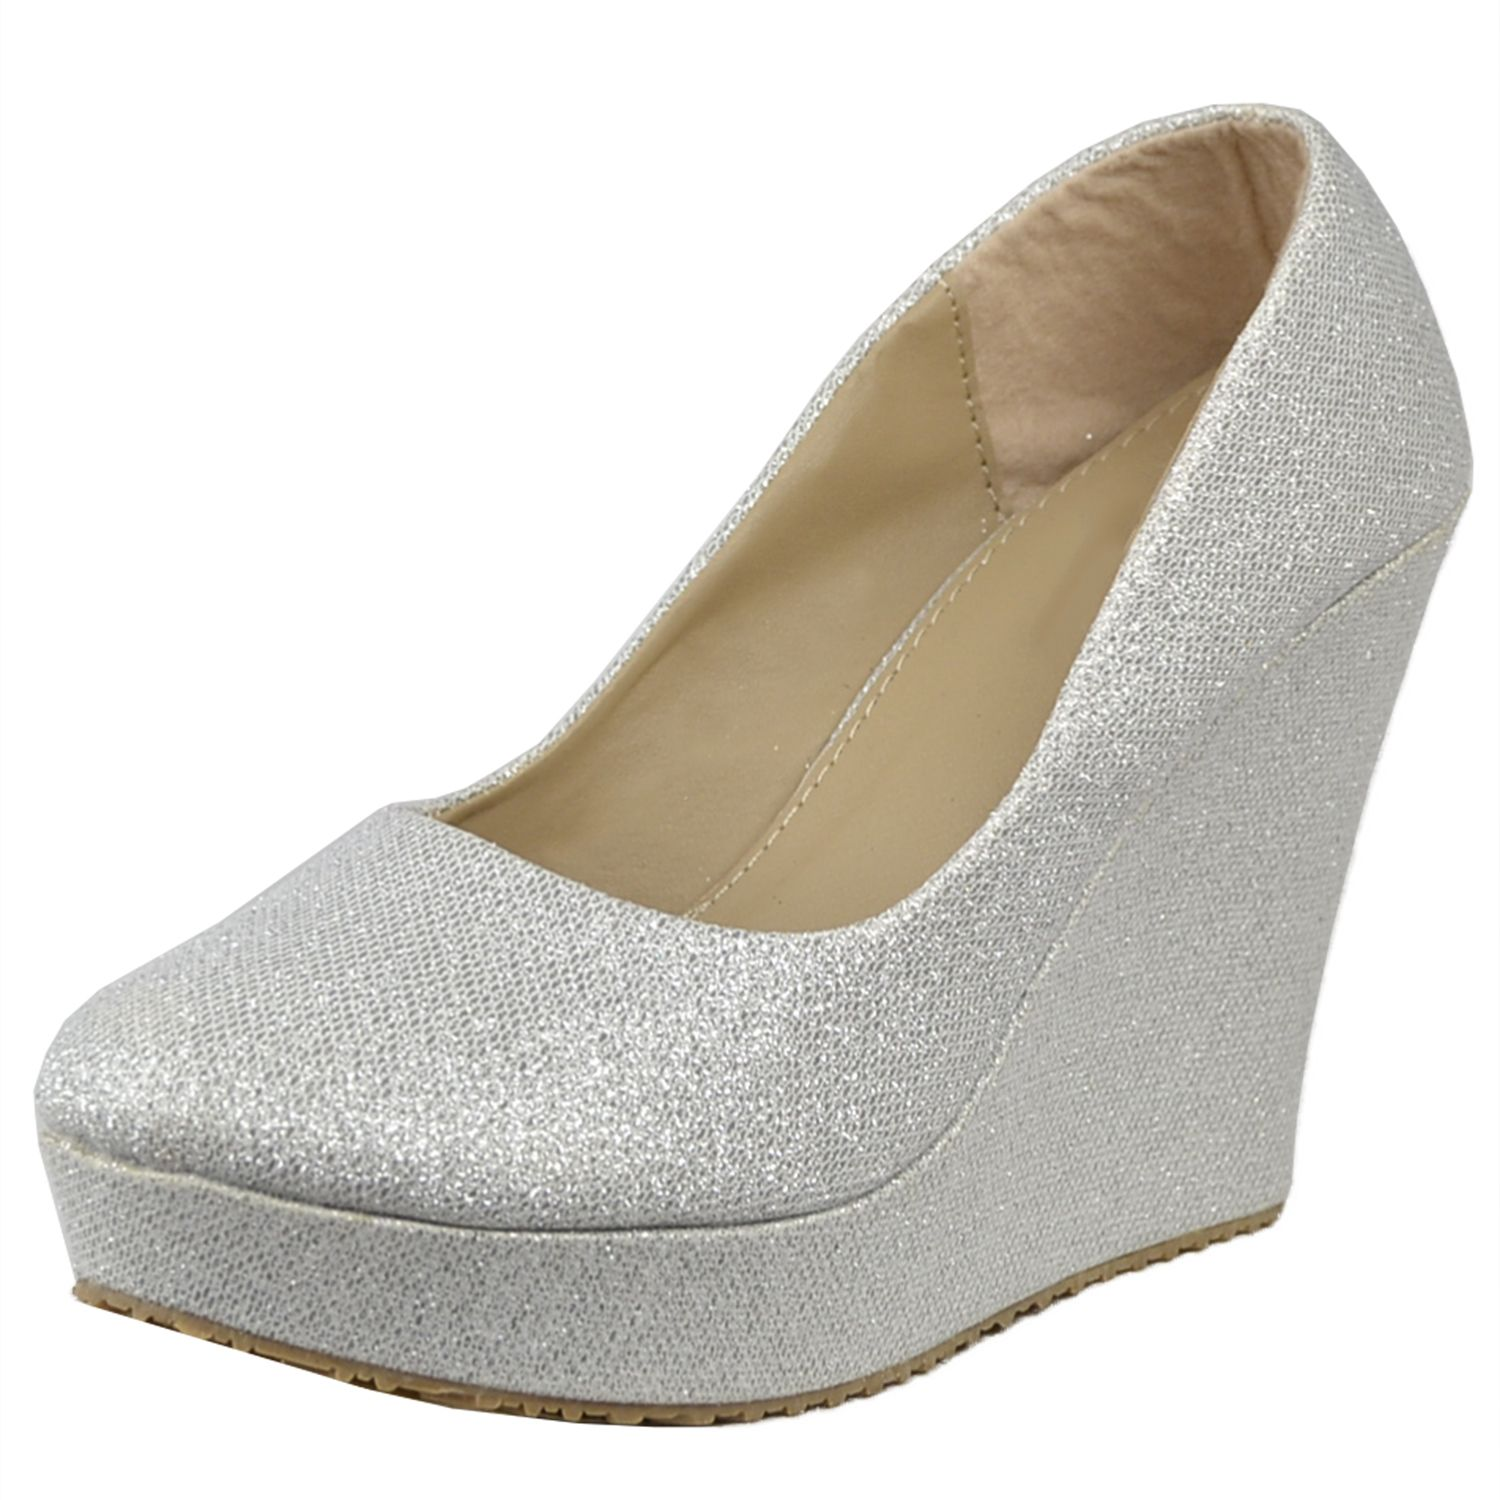 8fc266a3d534 Womens Platform Shoes Glitter Accent Closed Toe Slip On Wedges Silver